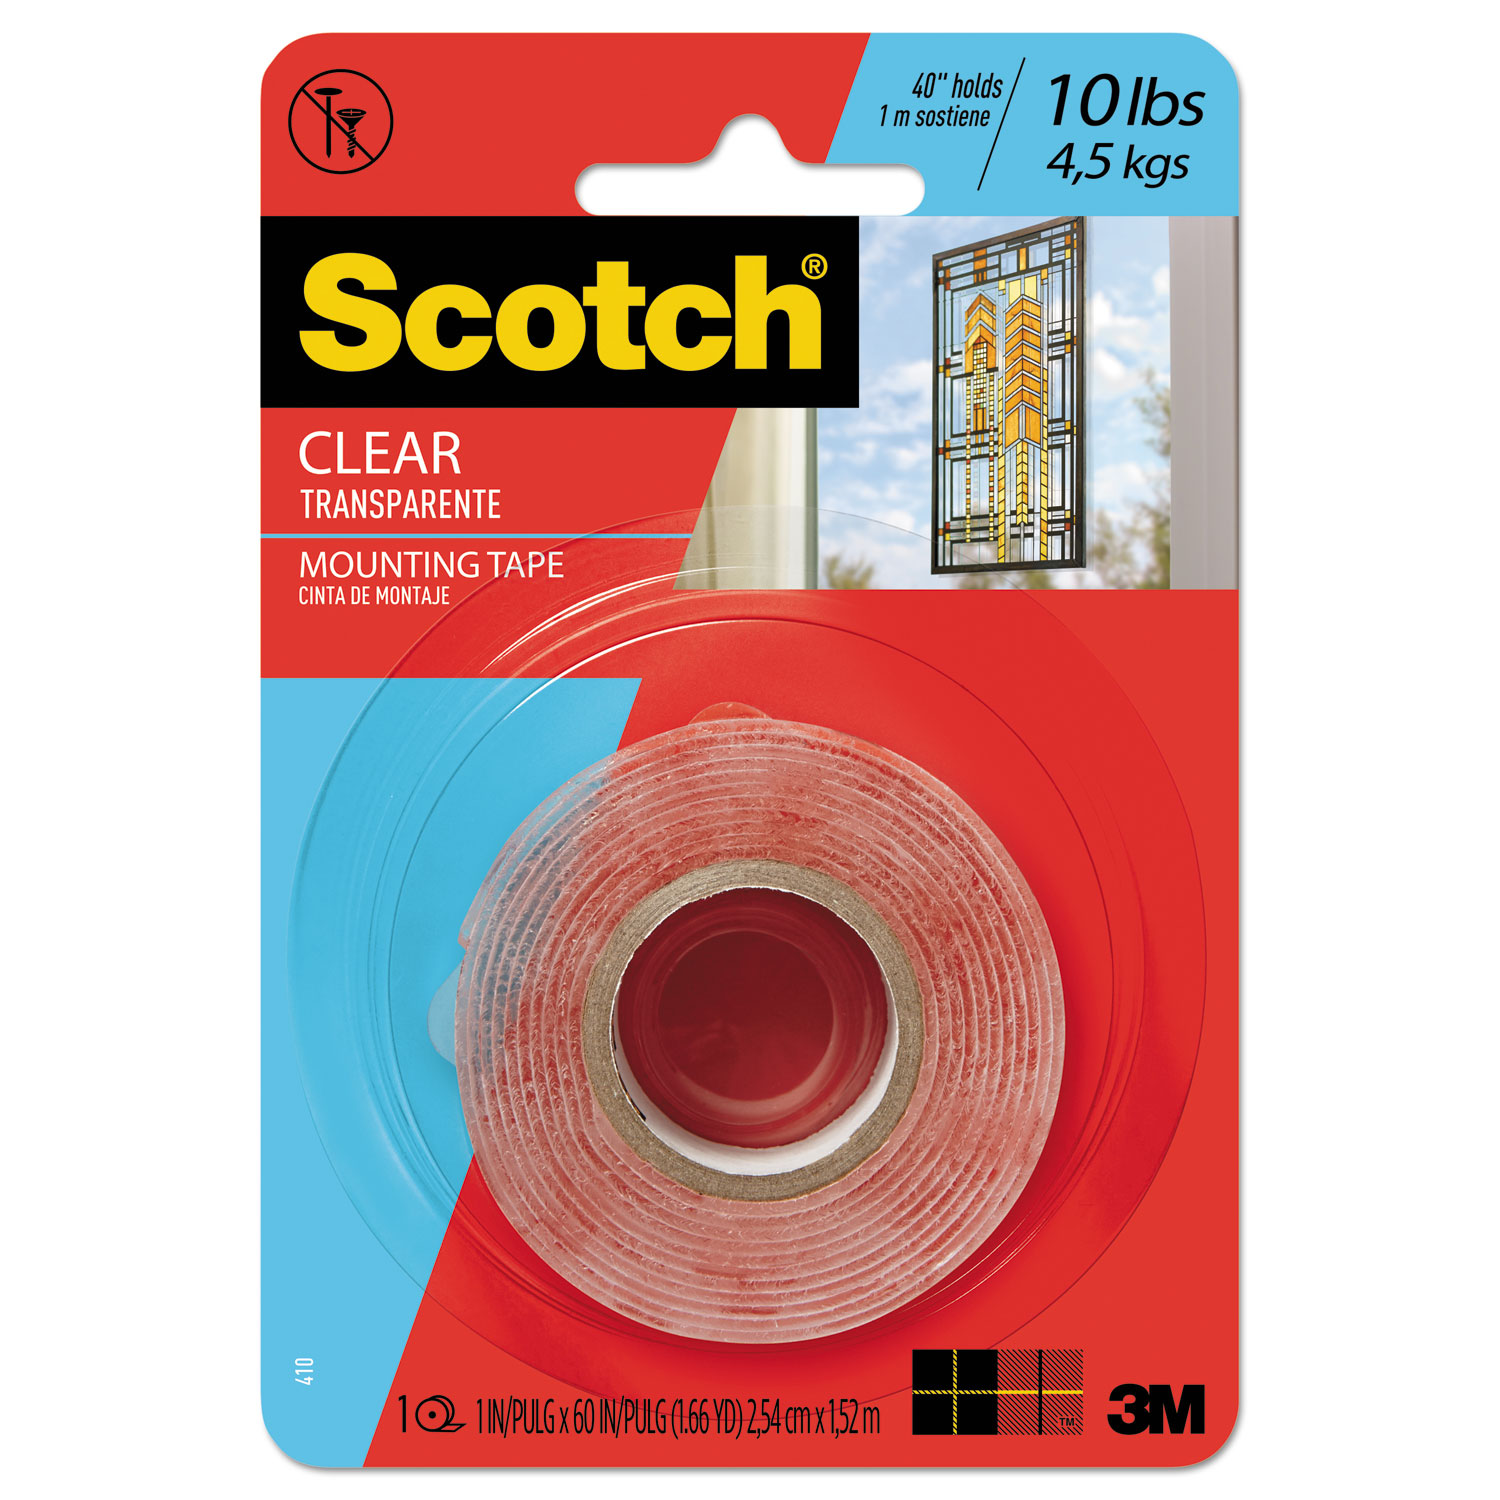 Double Sided Mounting Tape By Scotch Mmm410p Ontimesuppliescom